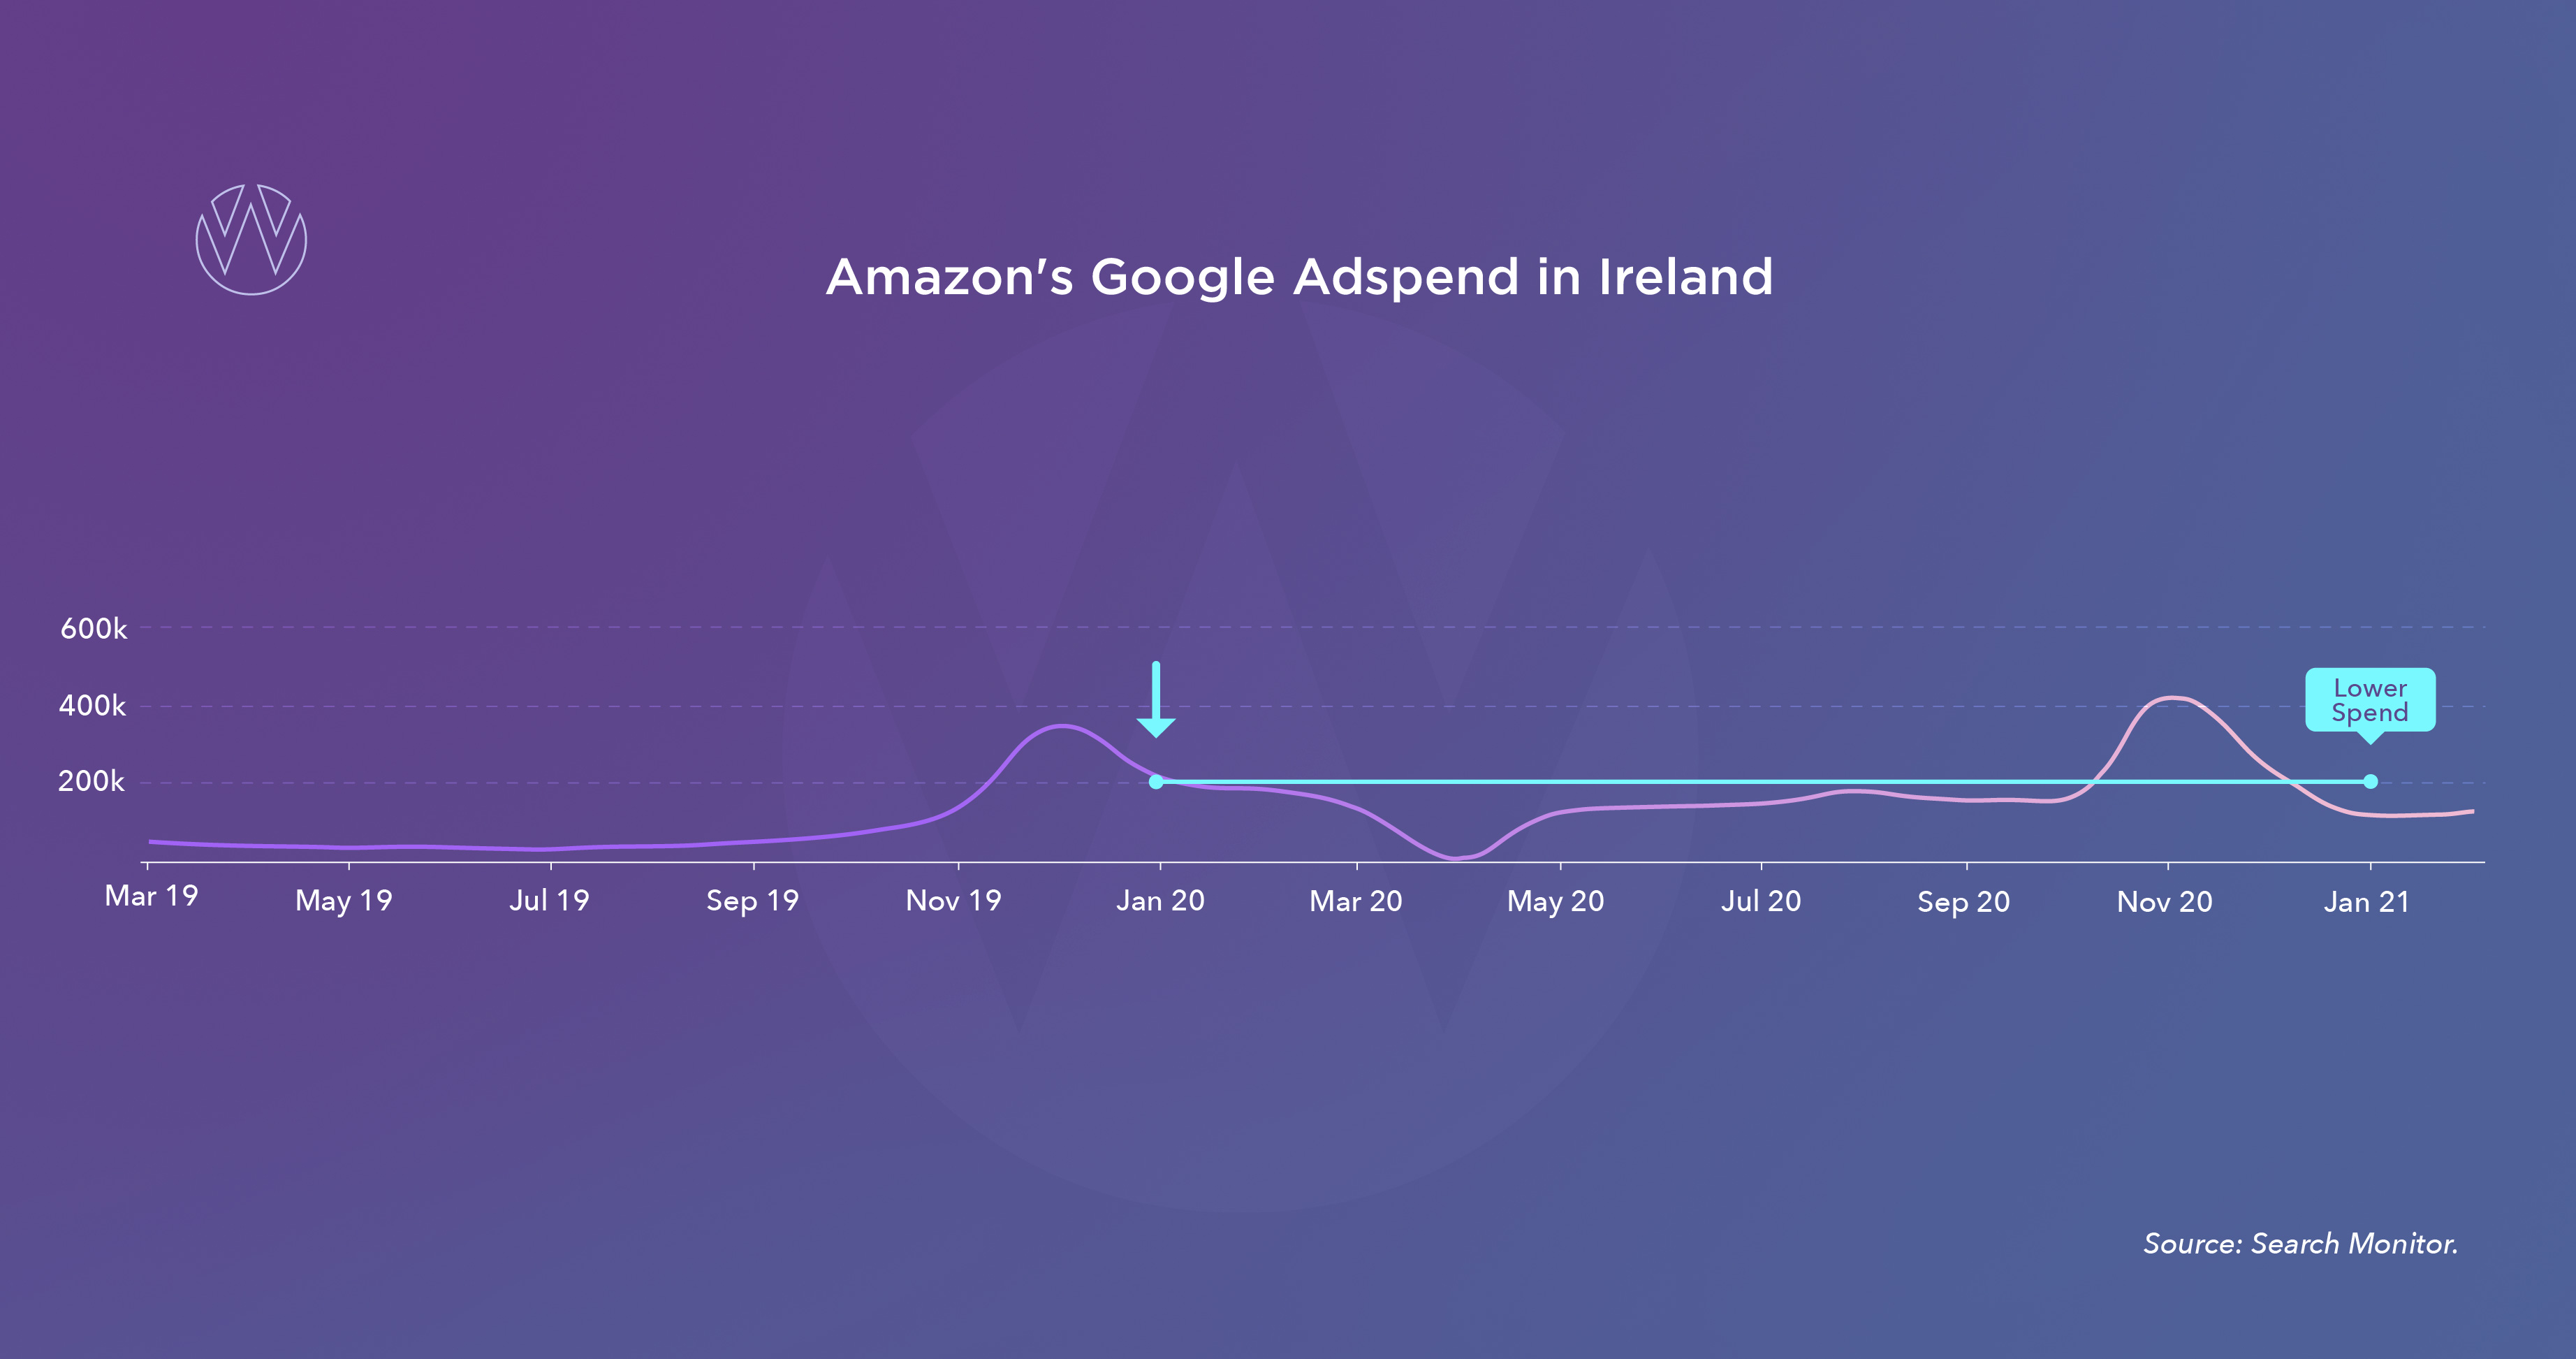 Amazon reduced spend in Ireland